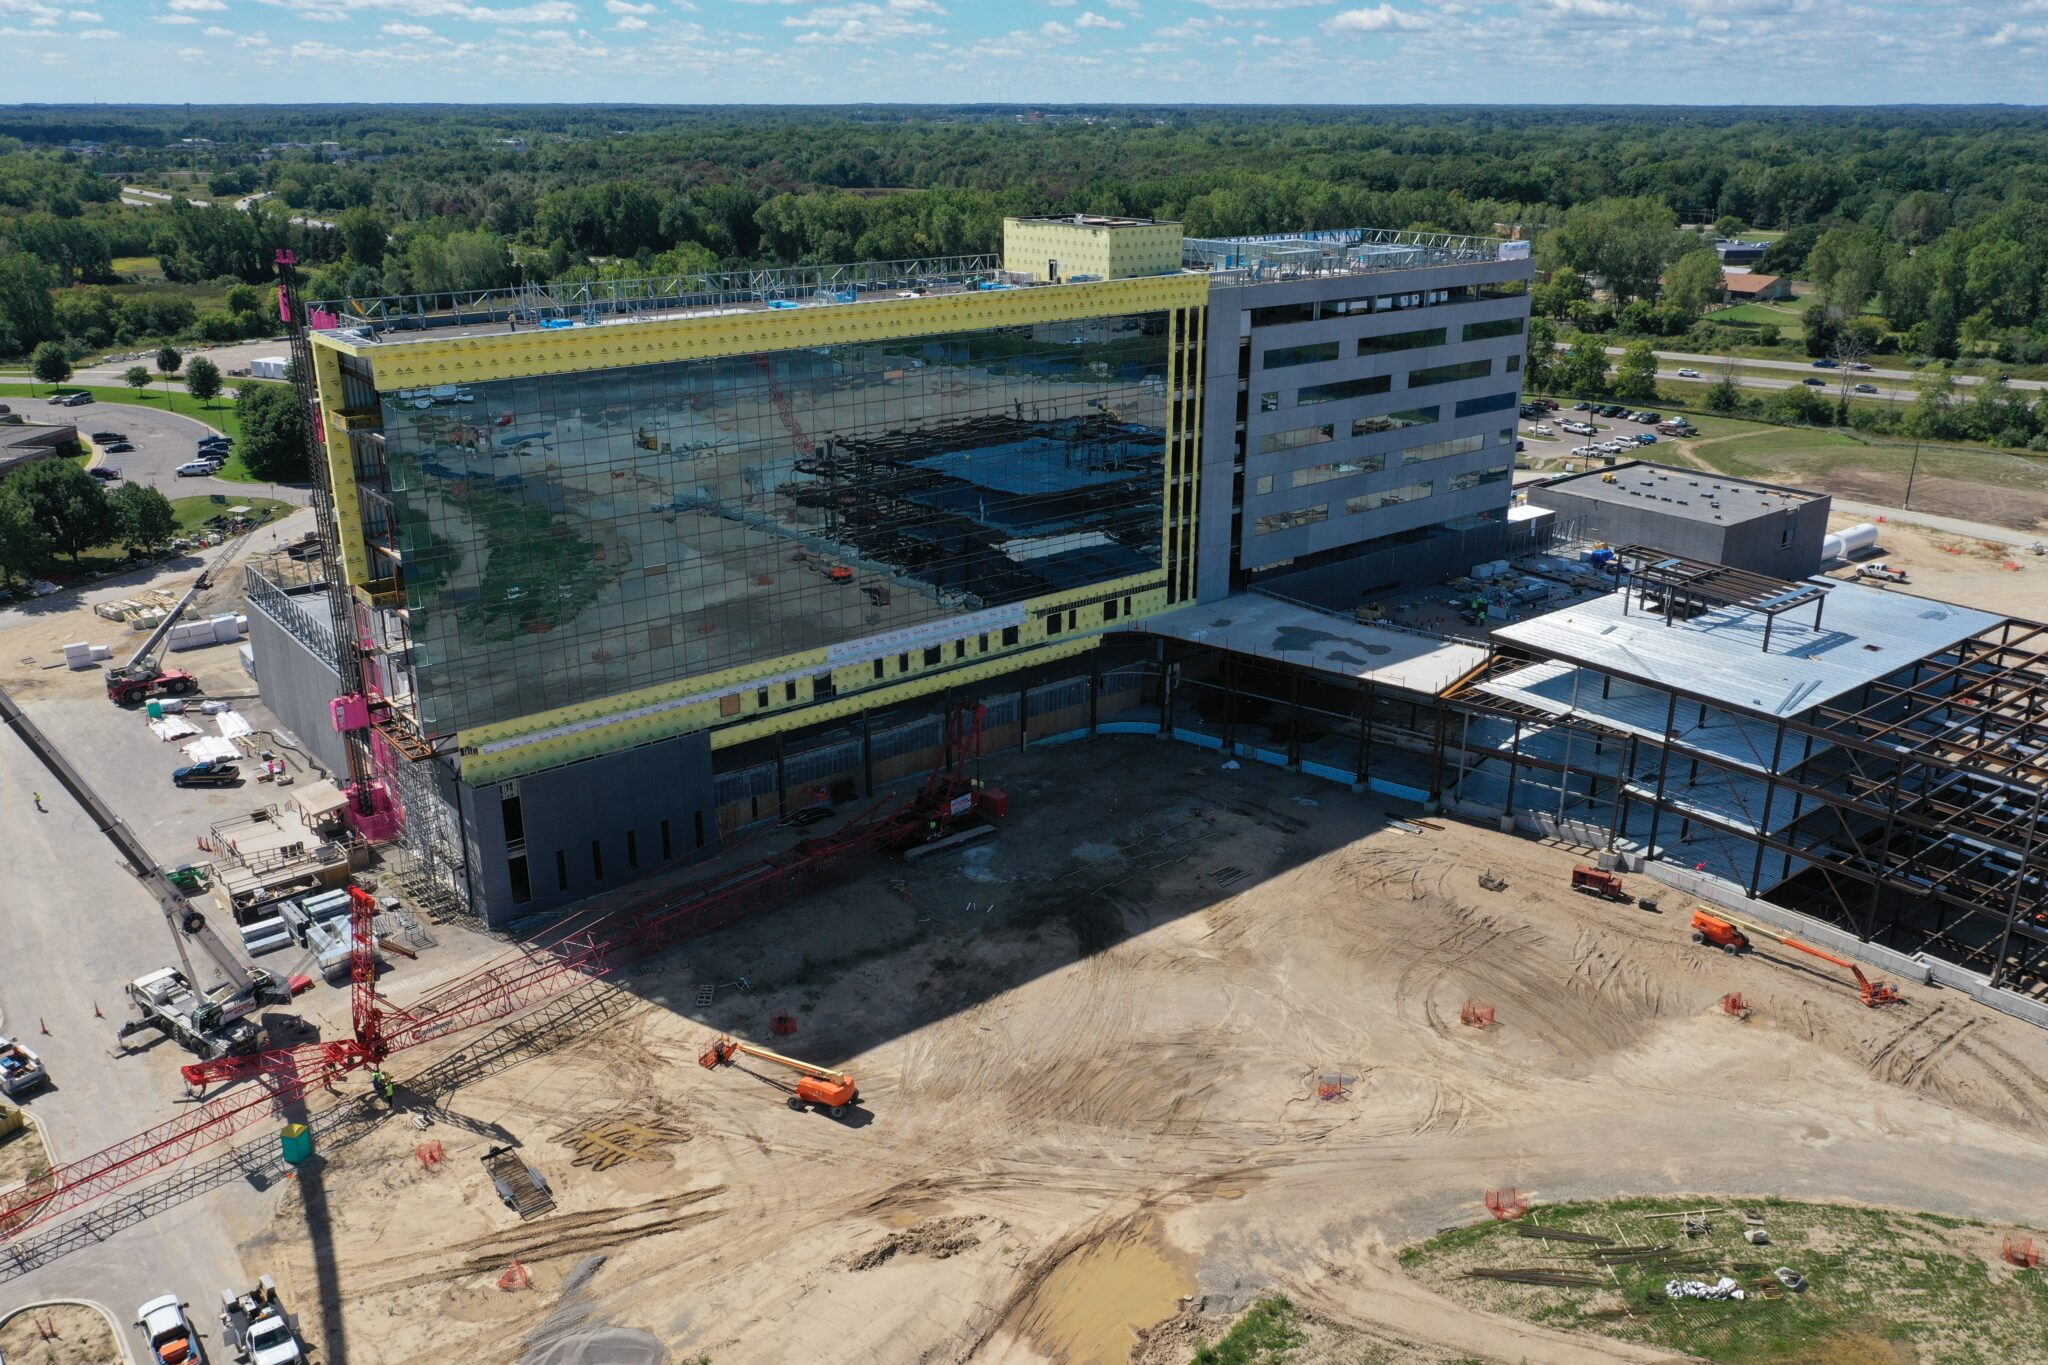 Picture of the new McLaren Greater Lansing Health Care Campus to add context.